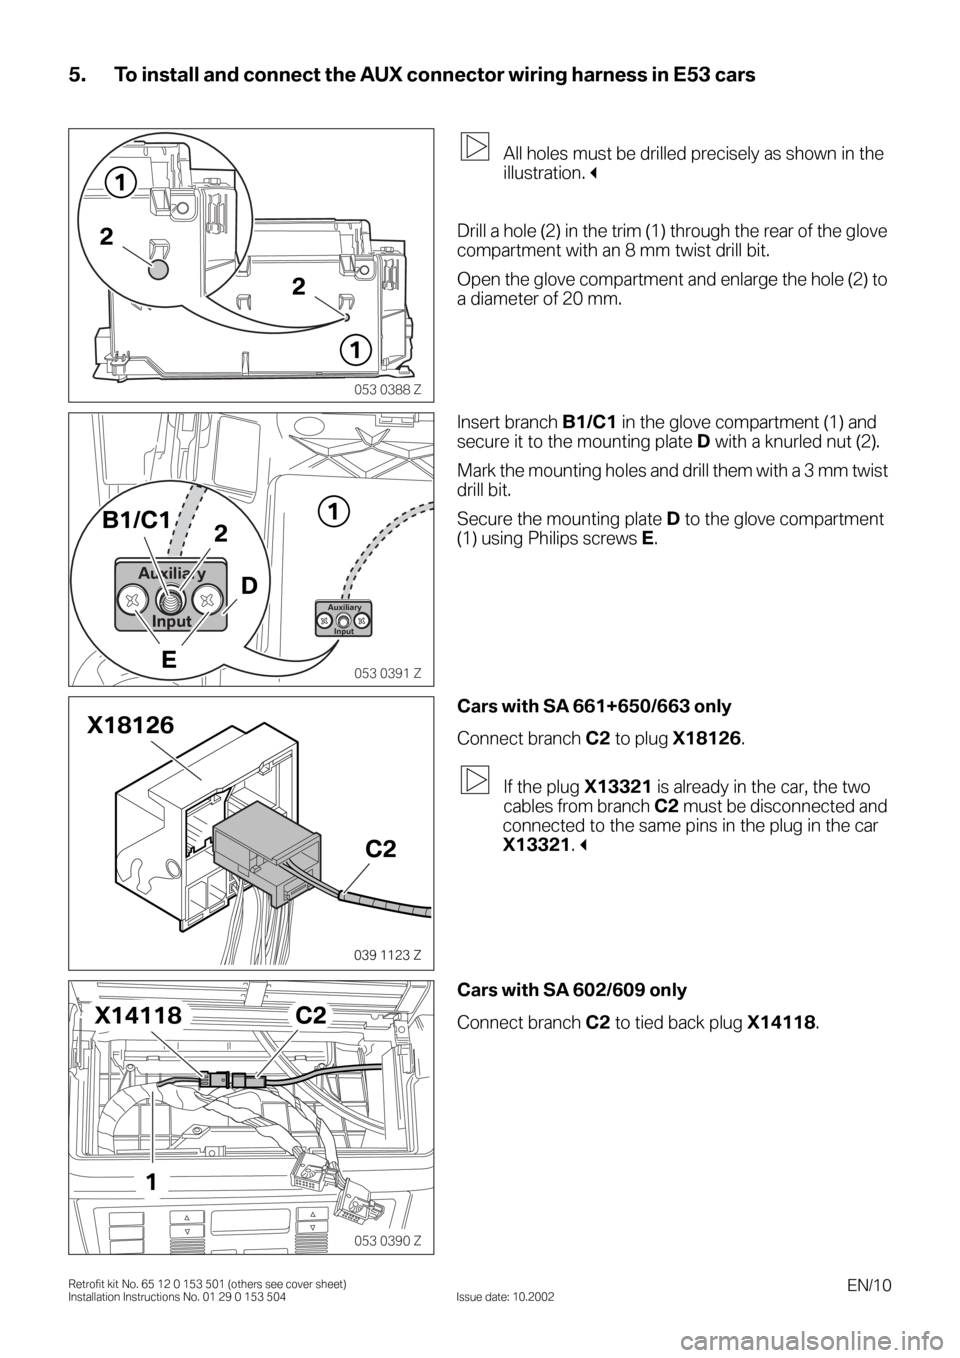 BMW 3 SERIES 2003 E46 Auxilliary Connector Installation Instruction Manual, Page 10